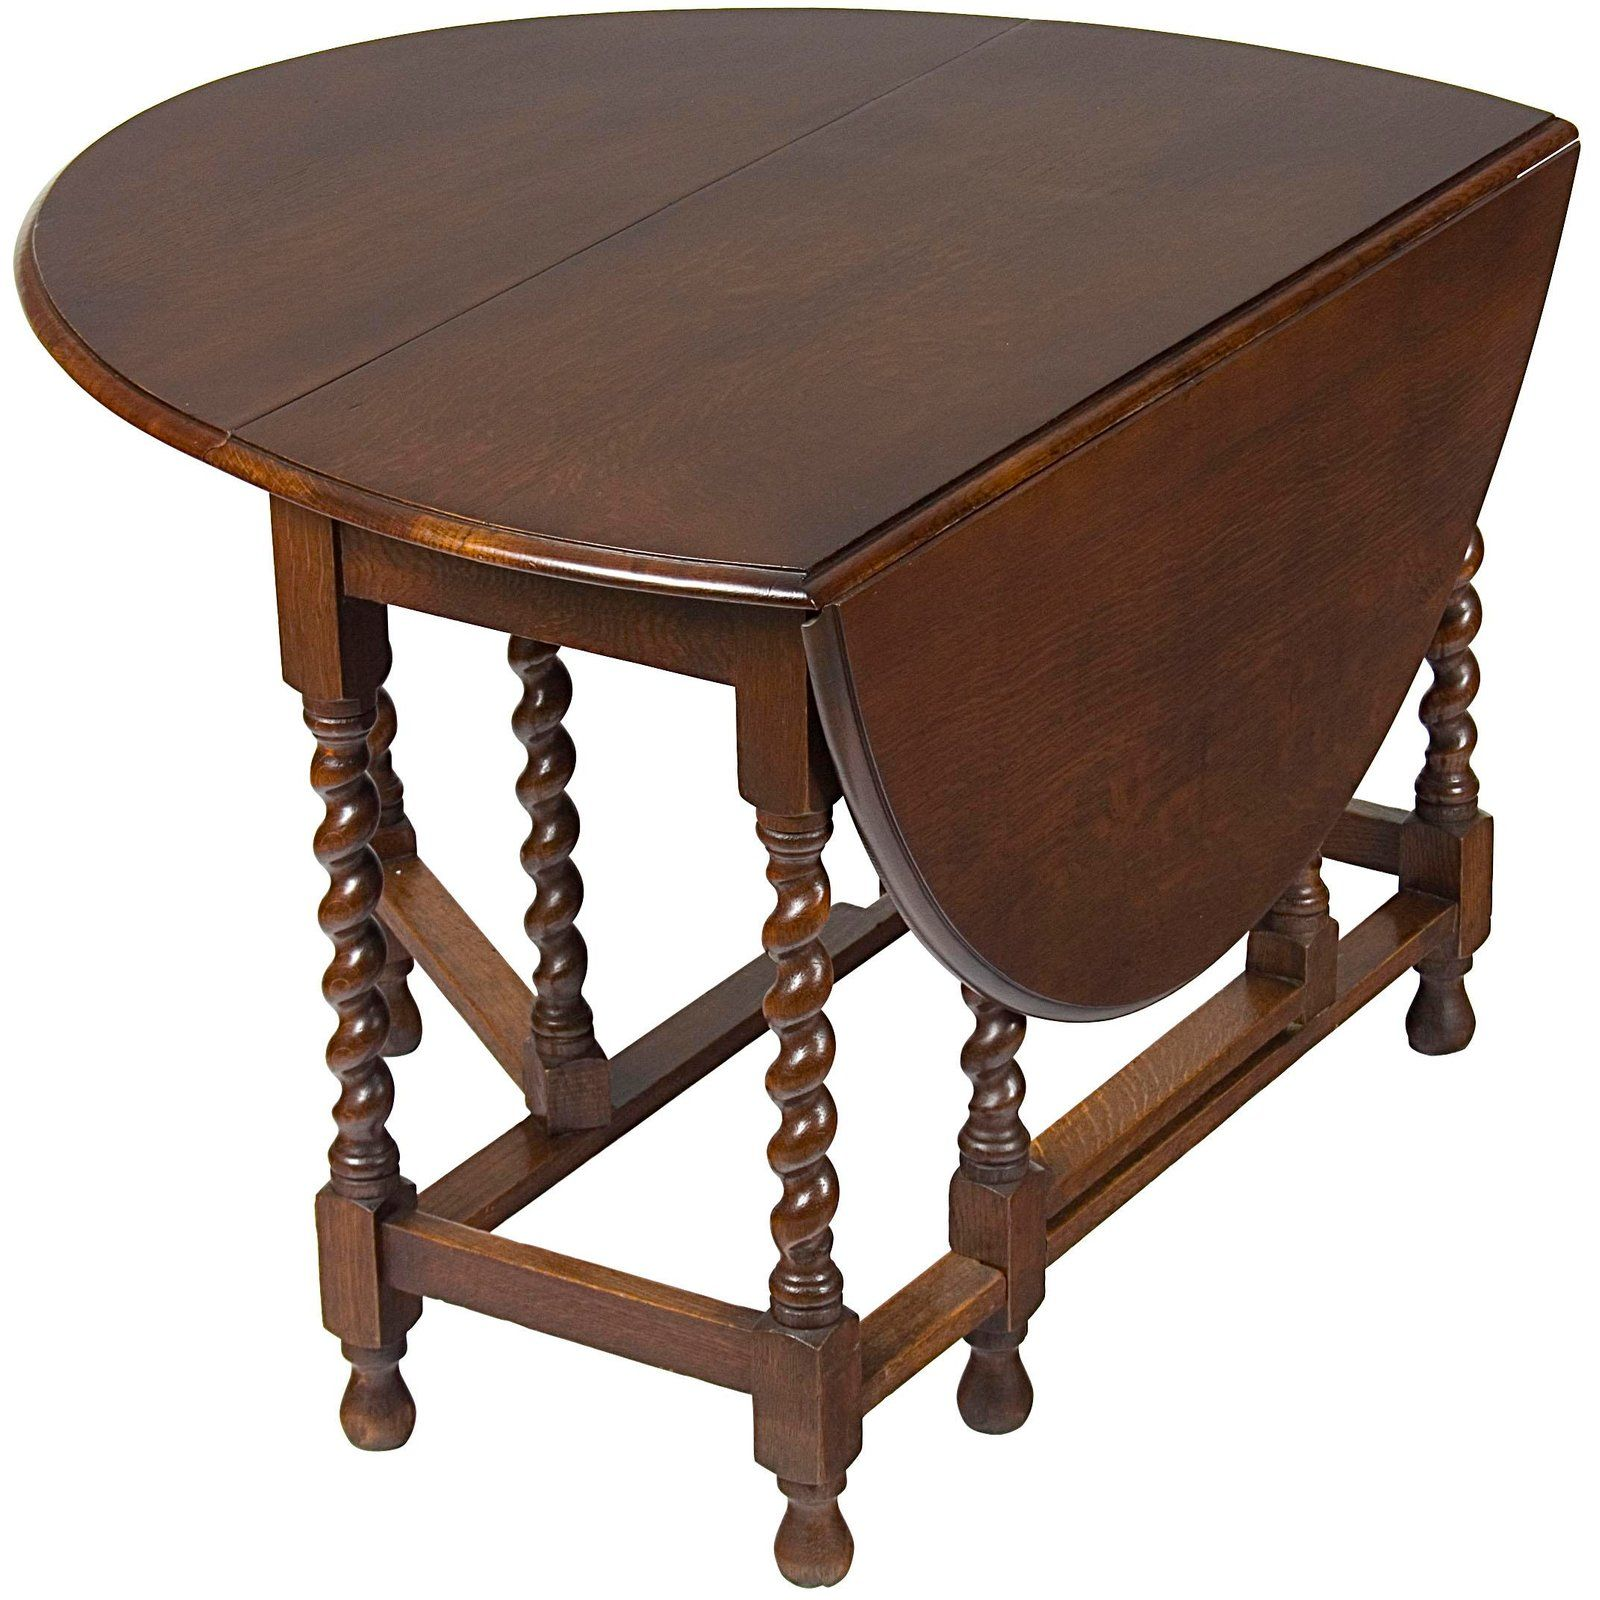 12s Jacobean English Oak Barley Twist Gate Leg Drop Leaf Table